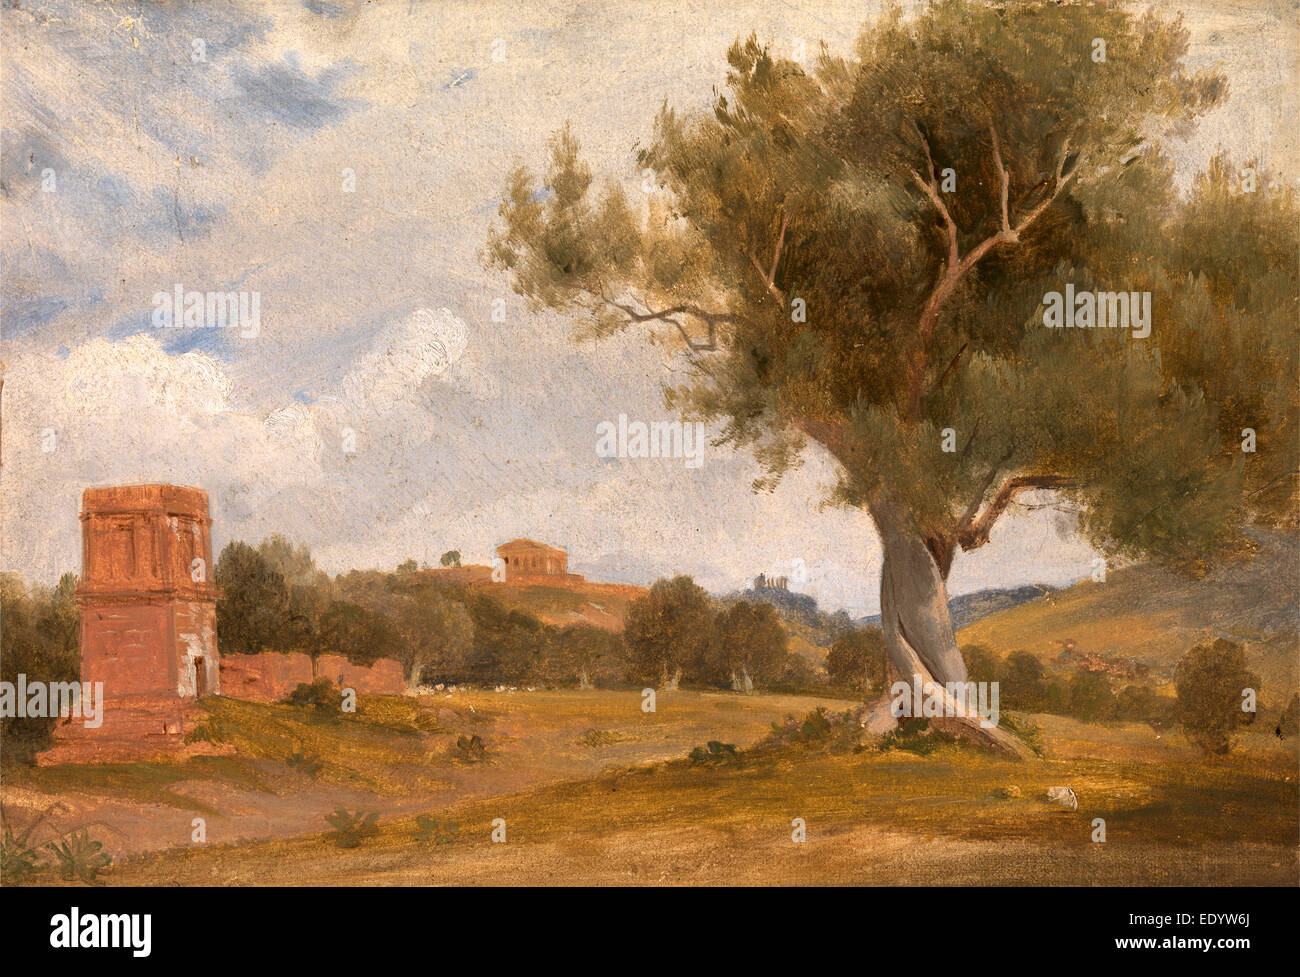 A View at Girgenti in Sicily with the Temple of Concord and Juno, Italy, Charles Lock Eastlake, 1793-1865, British - Stock Image